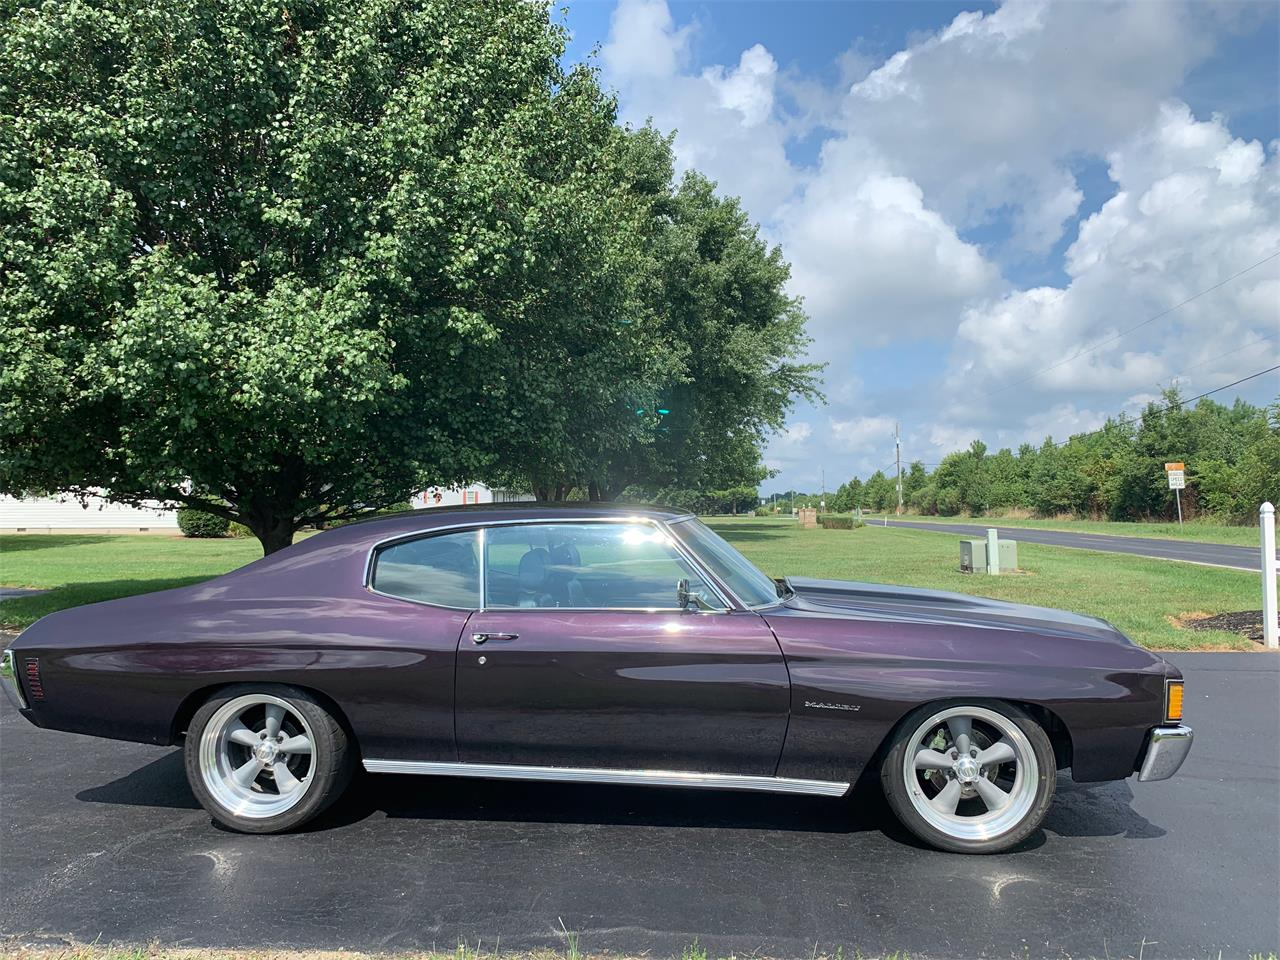 Large Picture of '72 Chevrolet Chevelle Malibu located in Maryland - $27,500.00 Offered by a Private Seller - QK1N